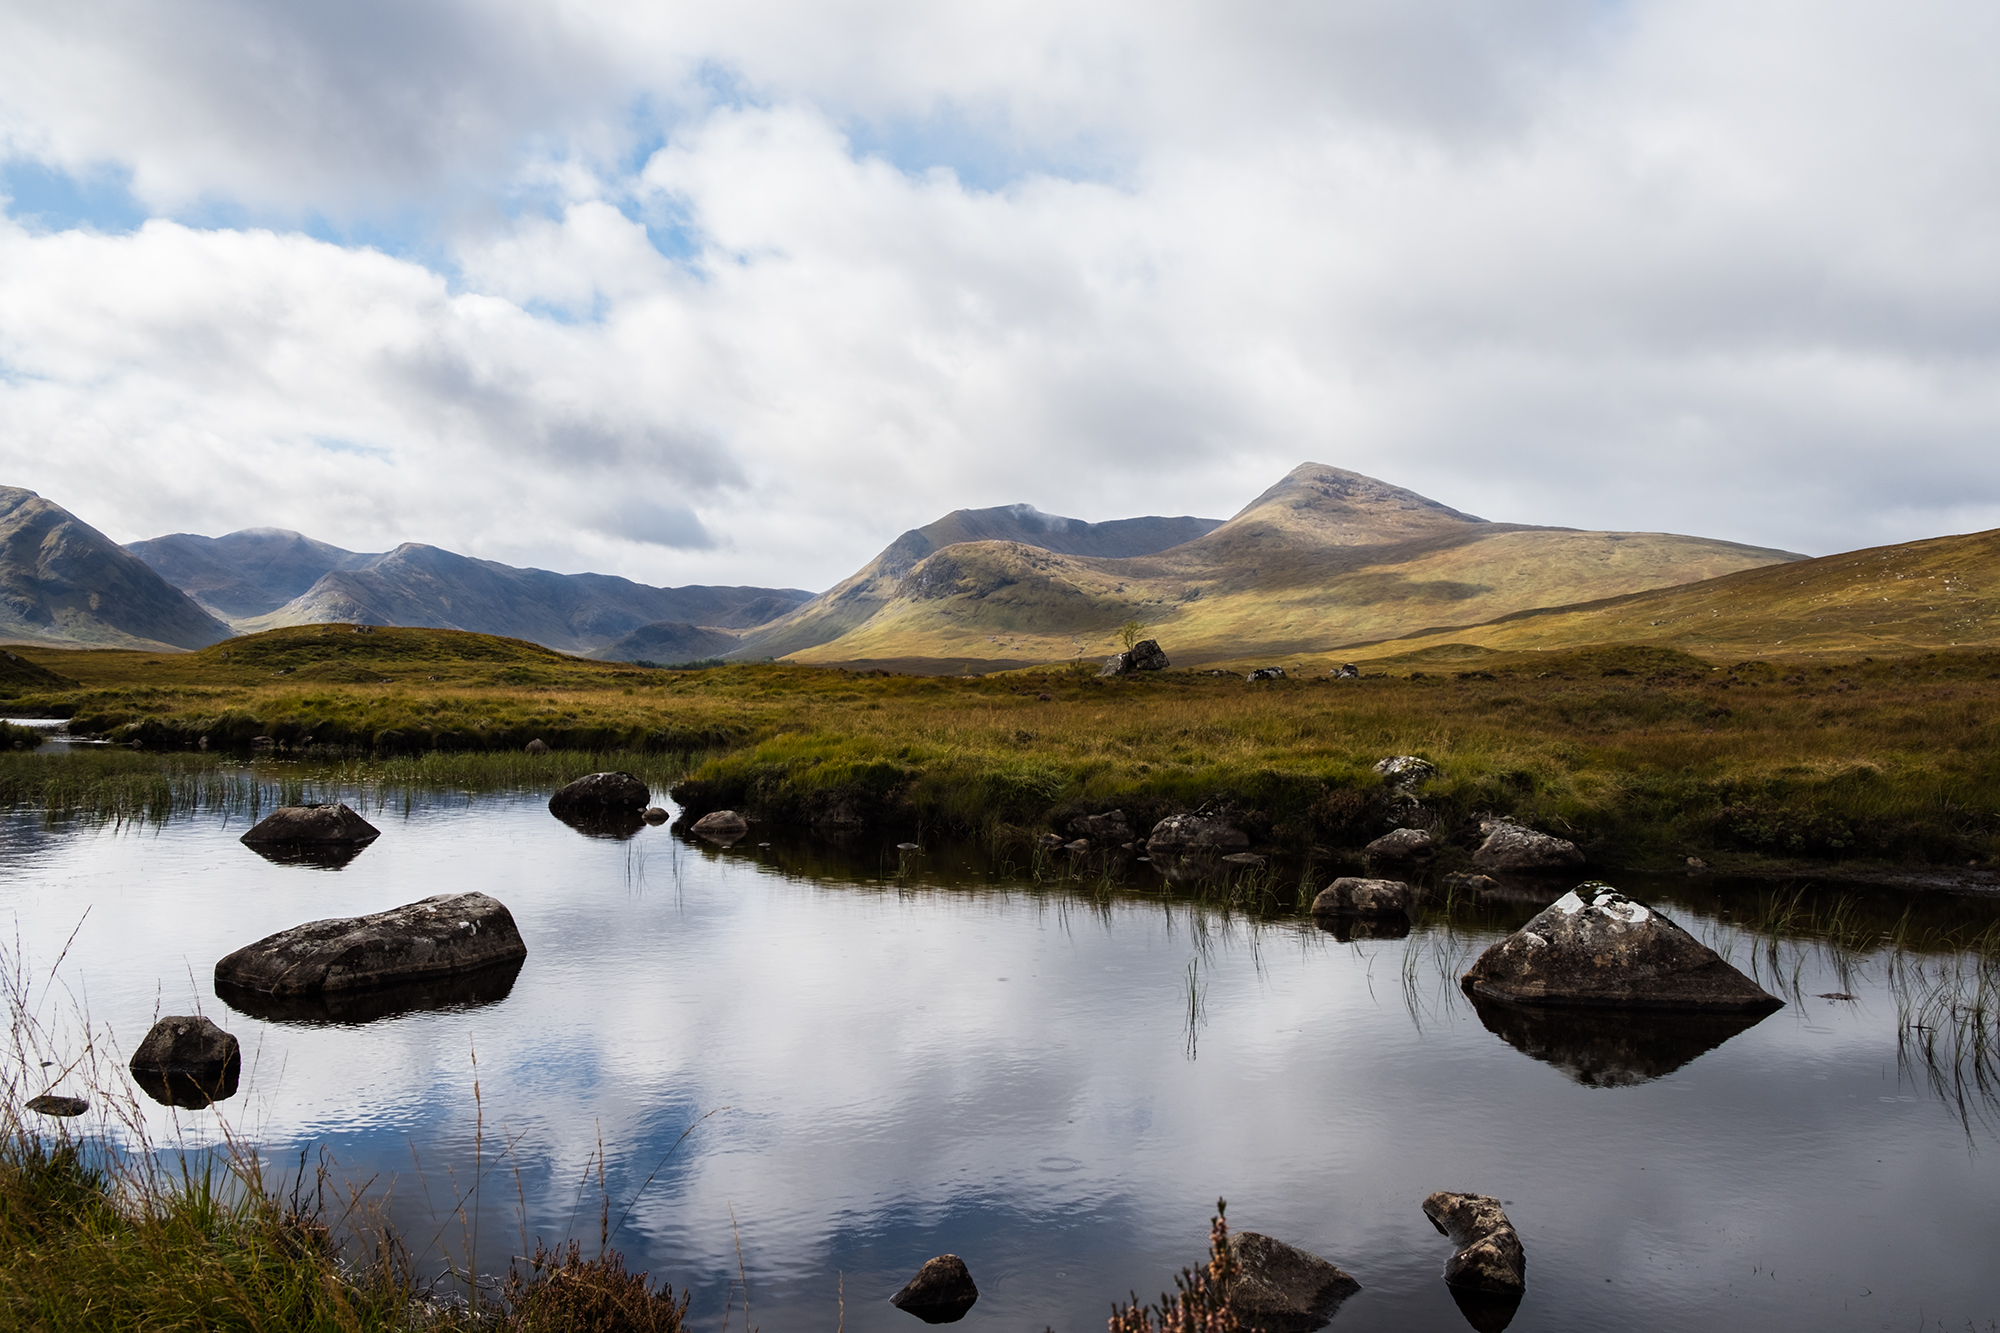 Loch narrow-leaved: landing and care 64